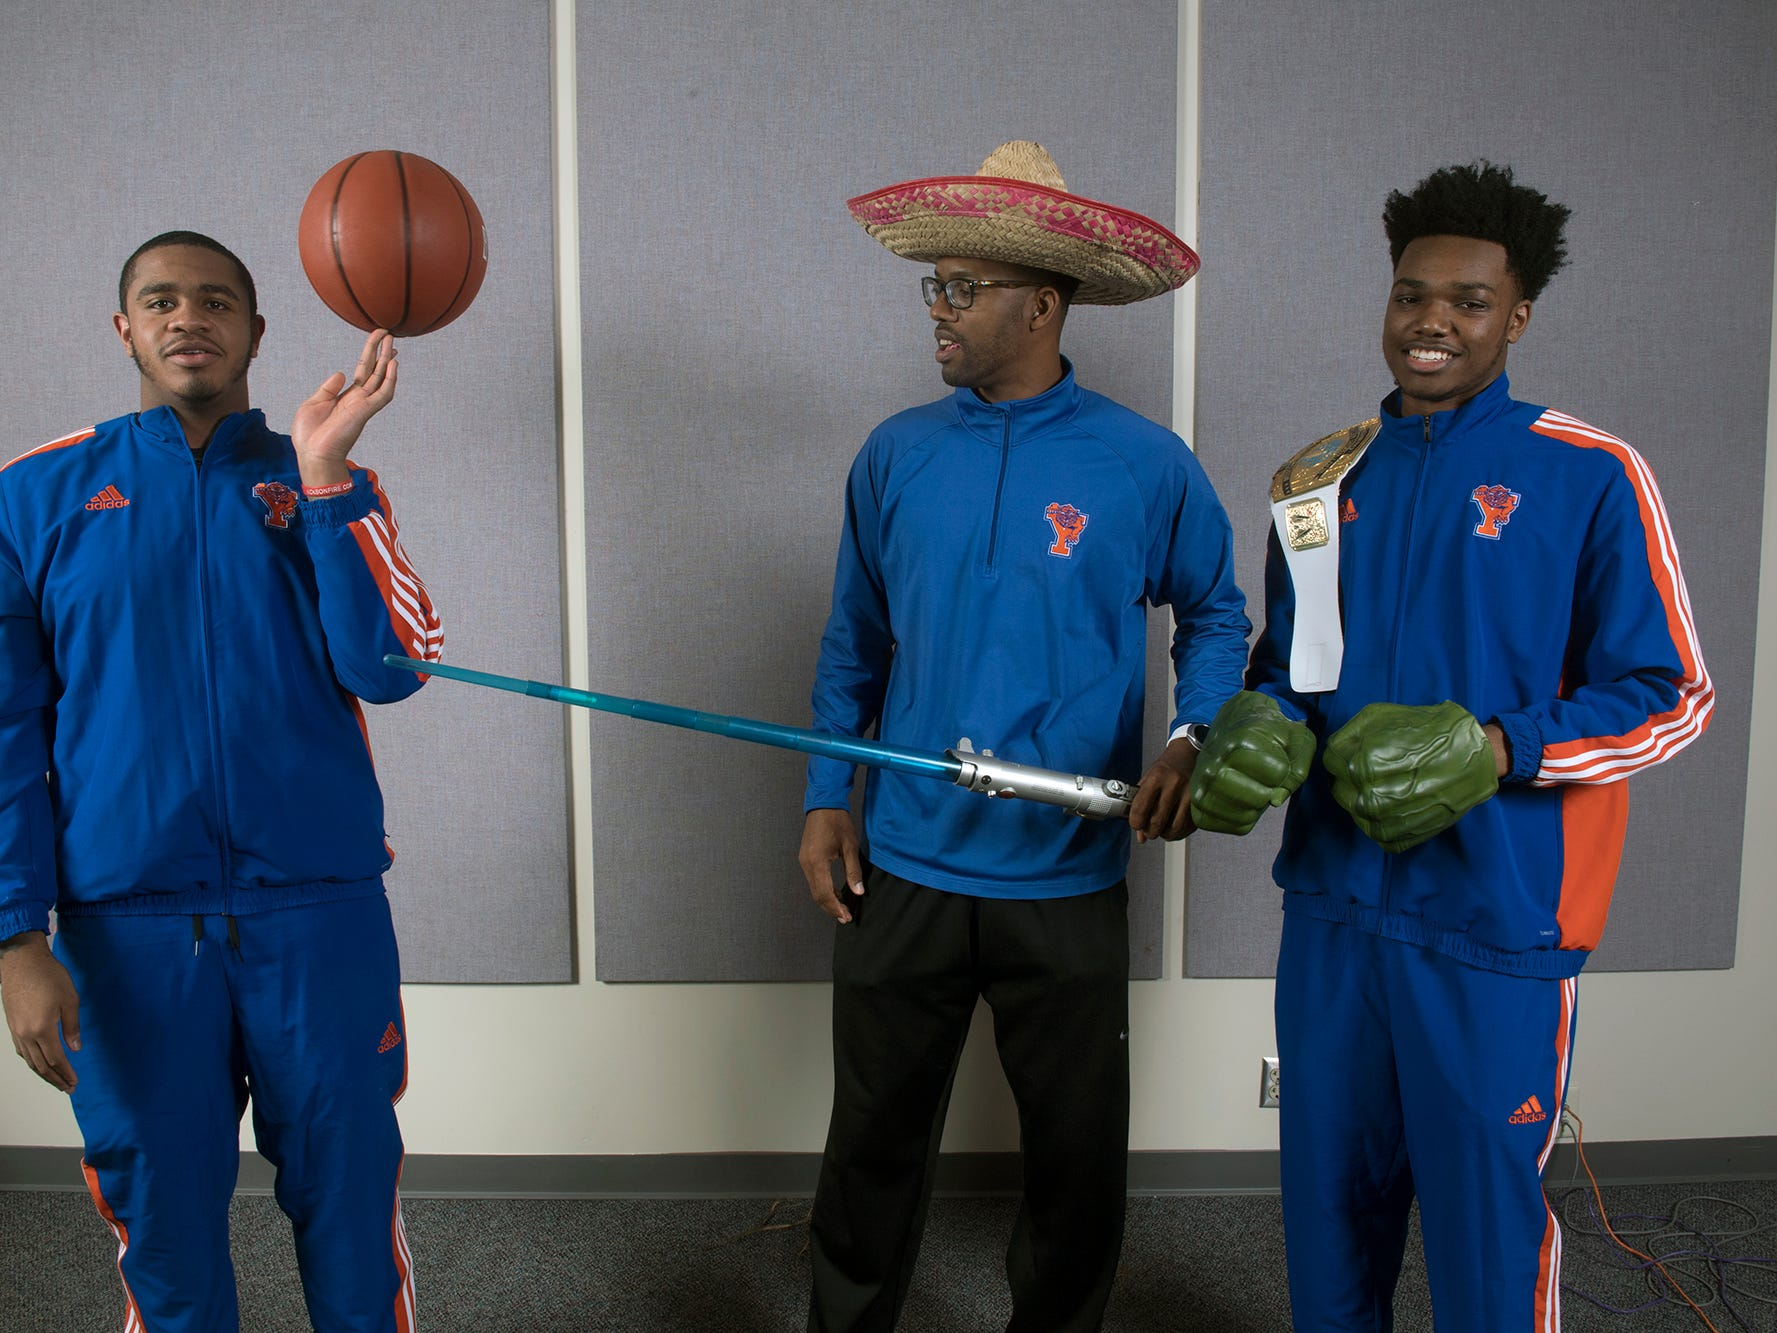 From the left, Marquise McClean, Clovis Gallon and Clovis Gallon Jr., of York High boys basketball team, pose during the 2018-19 GameTimePa YAIAA Winter Media Day Sunday November 11, 2018.